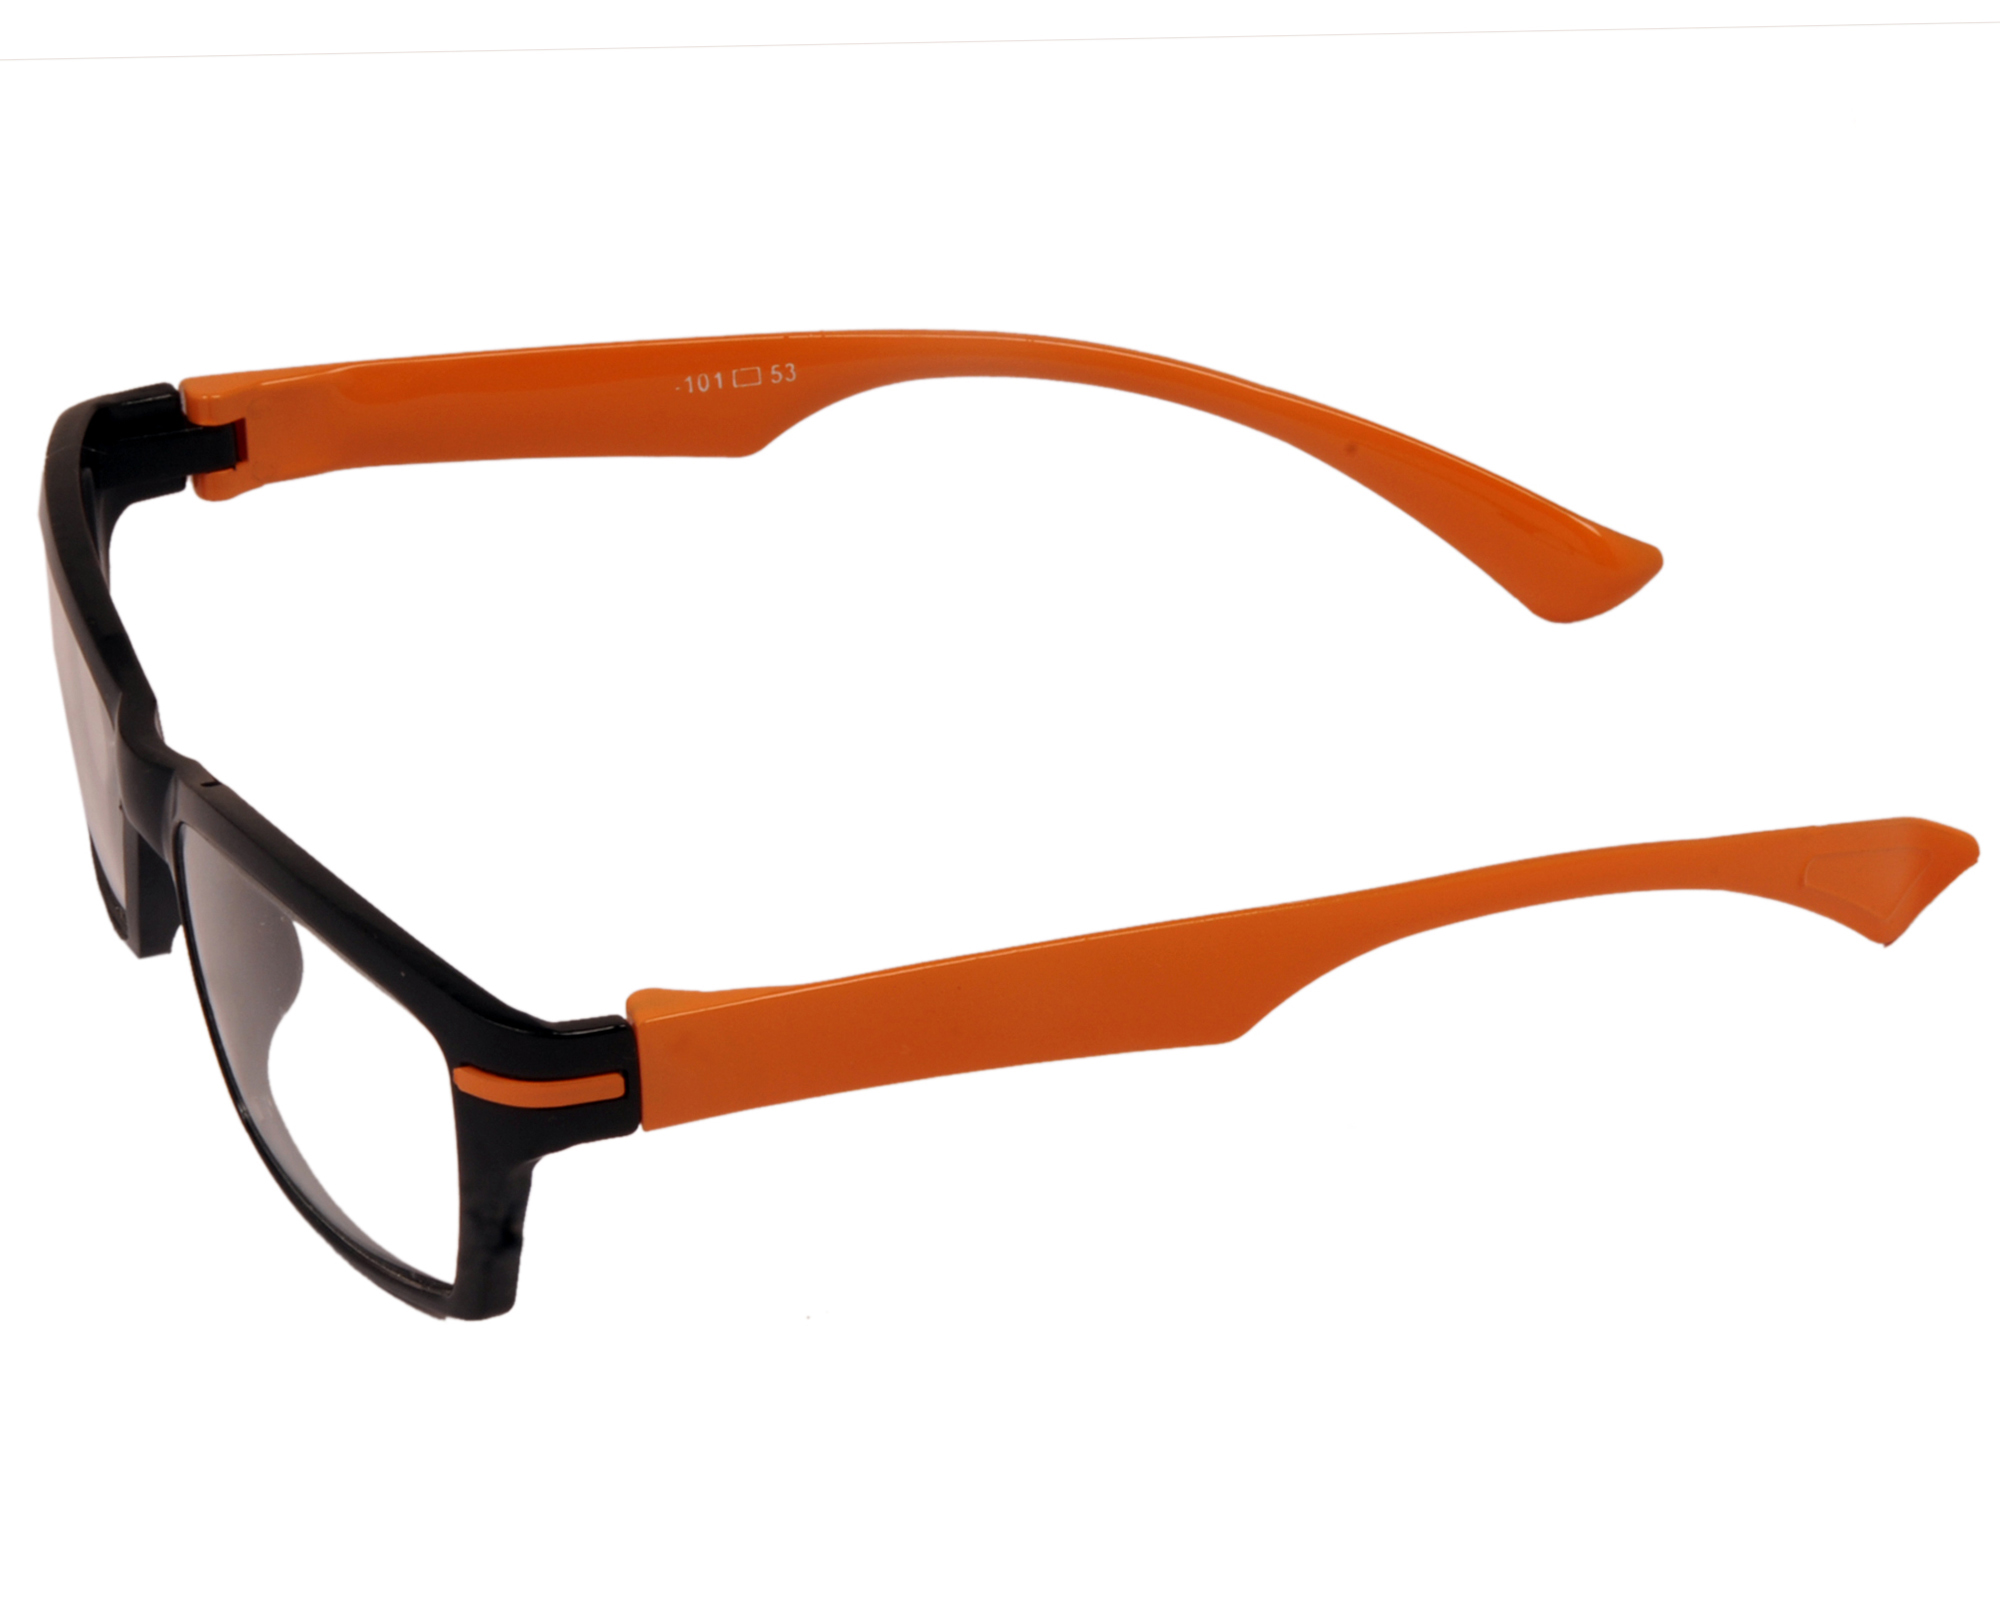 aoito orange classic black spectacles frames eyeglasses